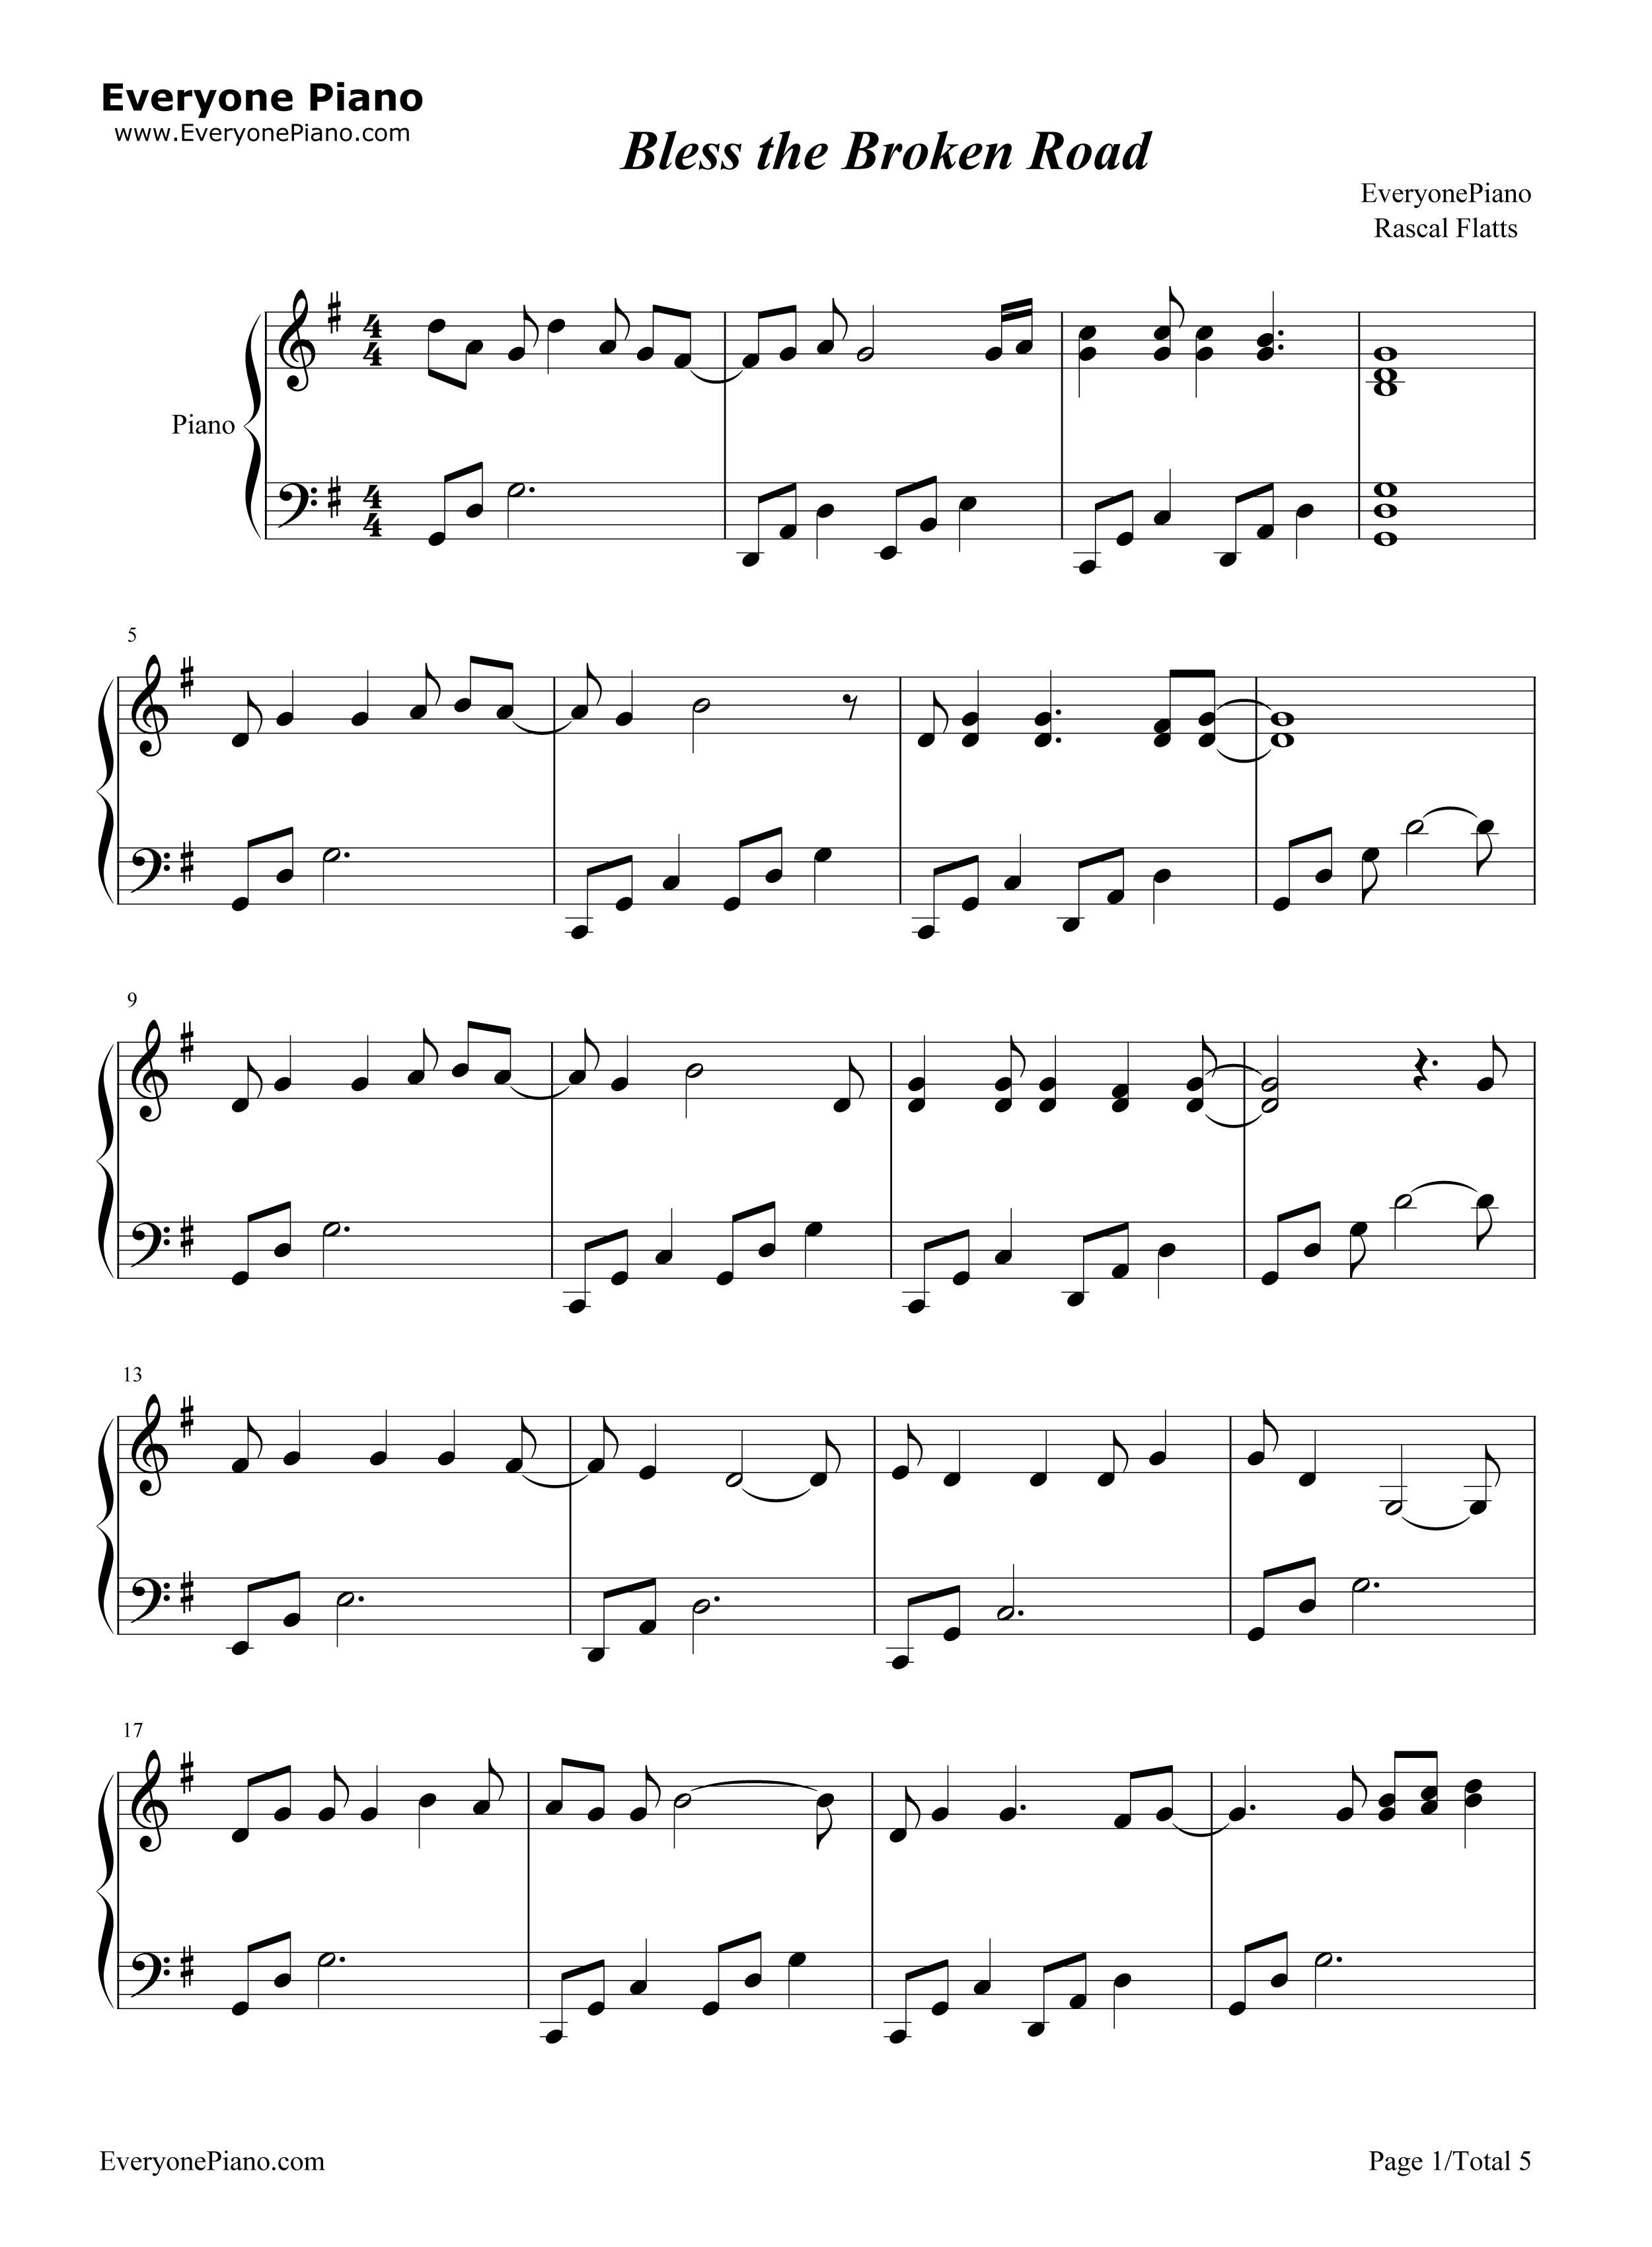 Bless the Broken Road-Rascal Flatts Stave Preview 1-Free Piano Sheet Music u0026 Piano Chords